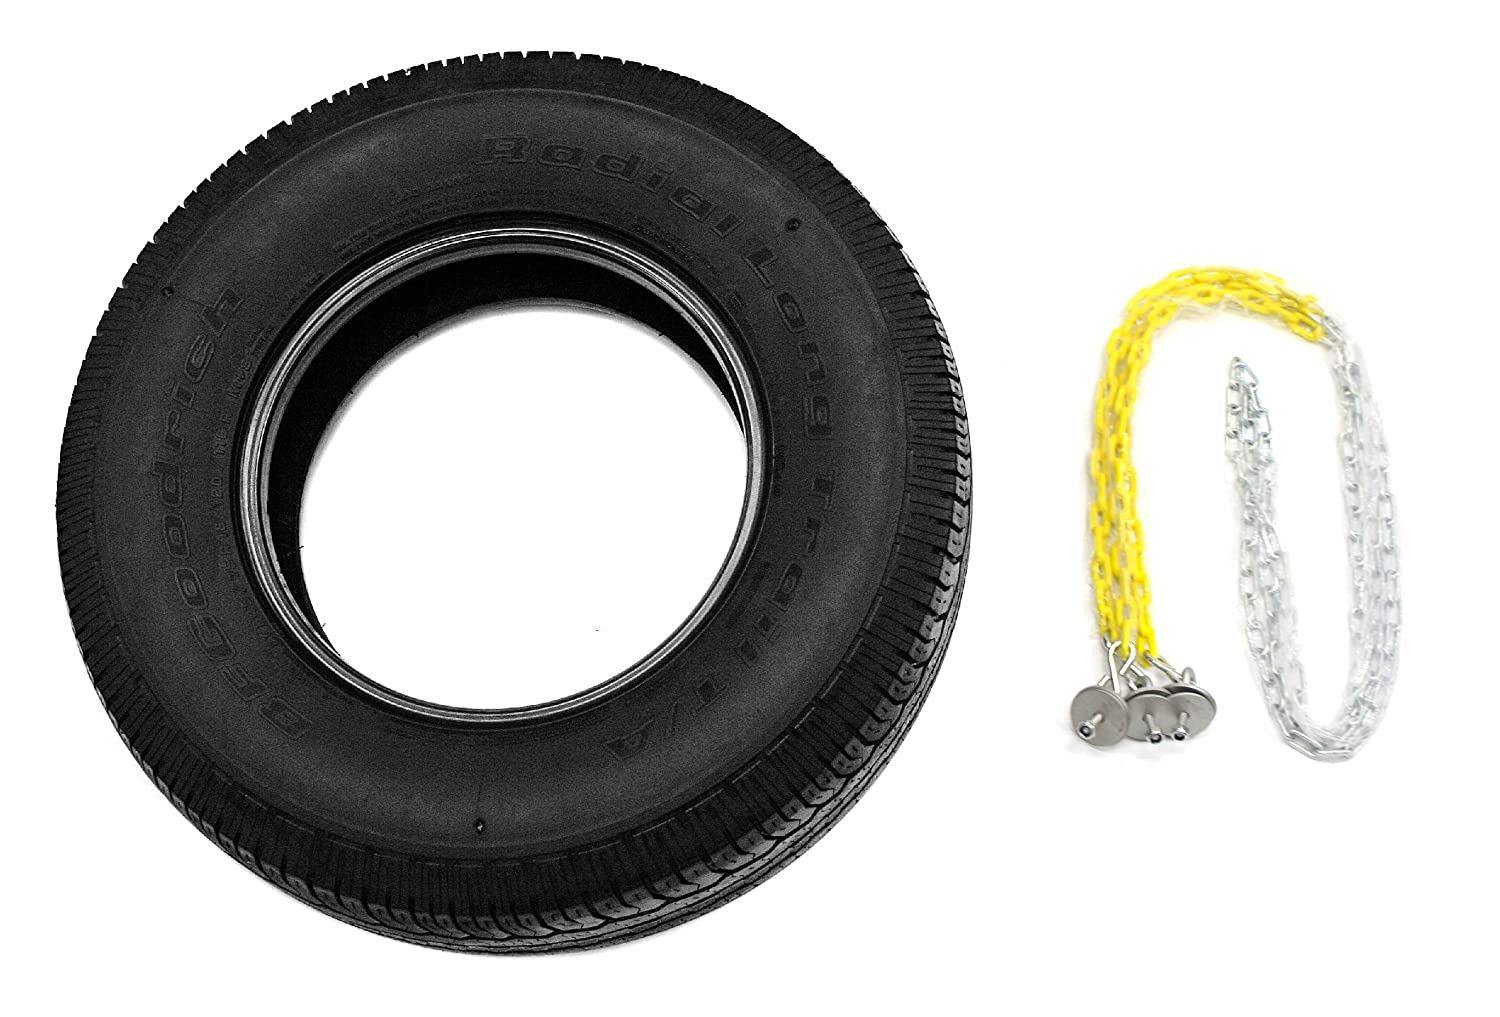 Tire Swing Attachment  Gym Heavy Duty Tire Swivel Ready to Use